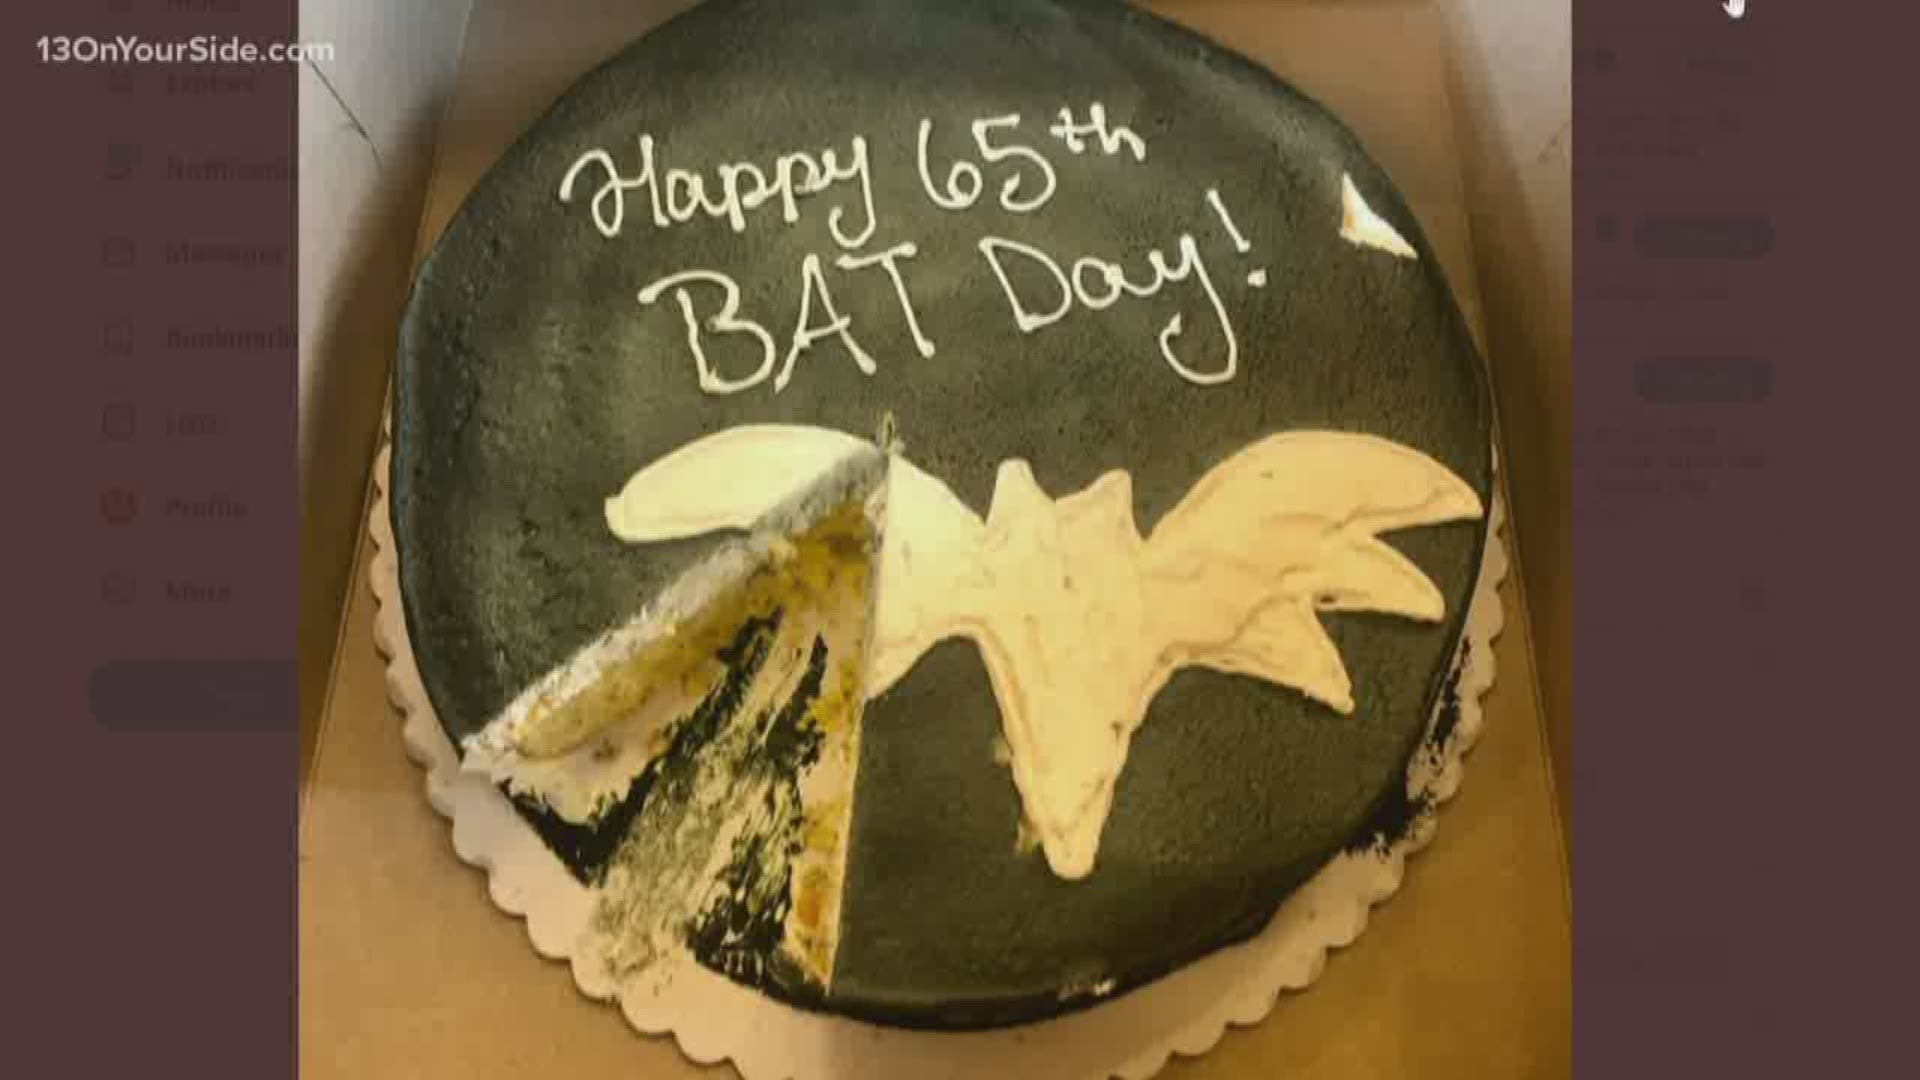 Enjoyable Whitmer Sends Shirkey A Bat Day Cake After His Comments Wzzm13 Com Funny Birthday Cards Online Inifofree Goldxyz